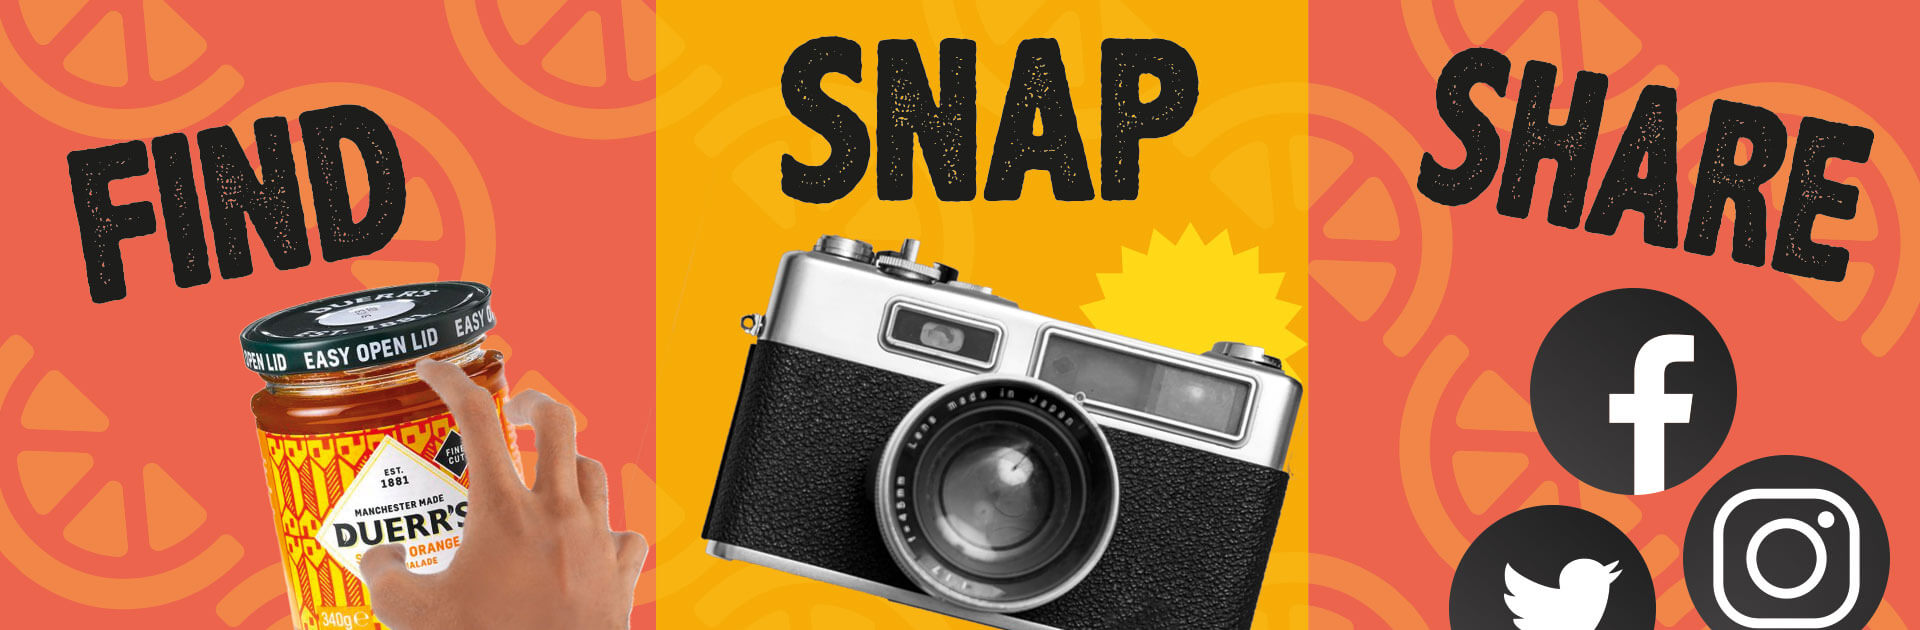 duerrs find snap share